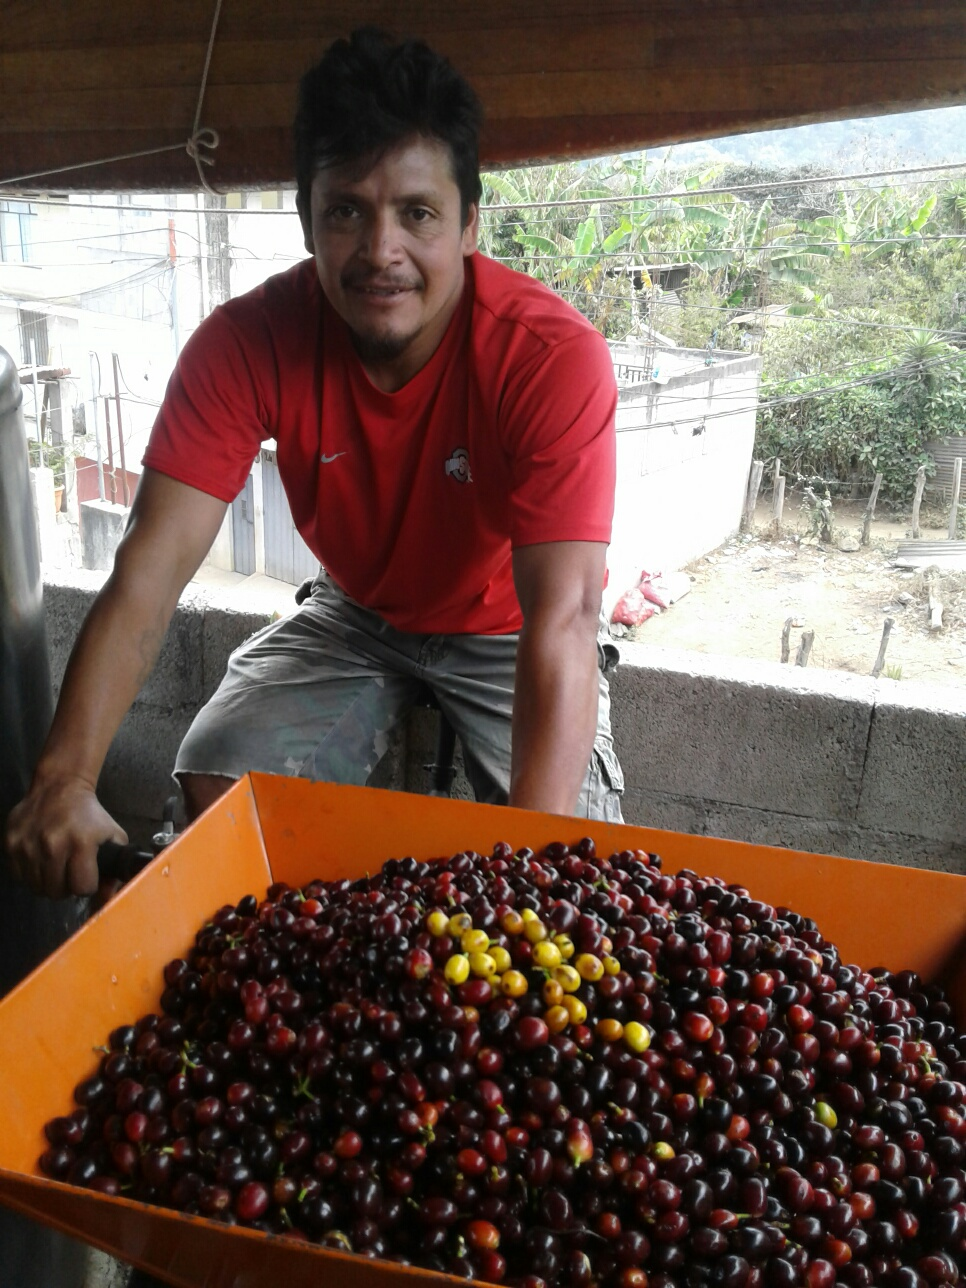 Pictured: Victor using a pulpero he was able to acquire with the funds from his Spartan Global microloan.